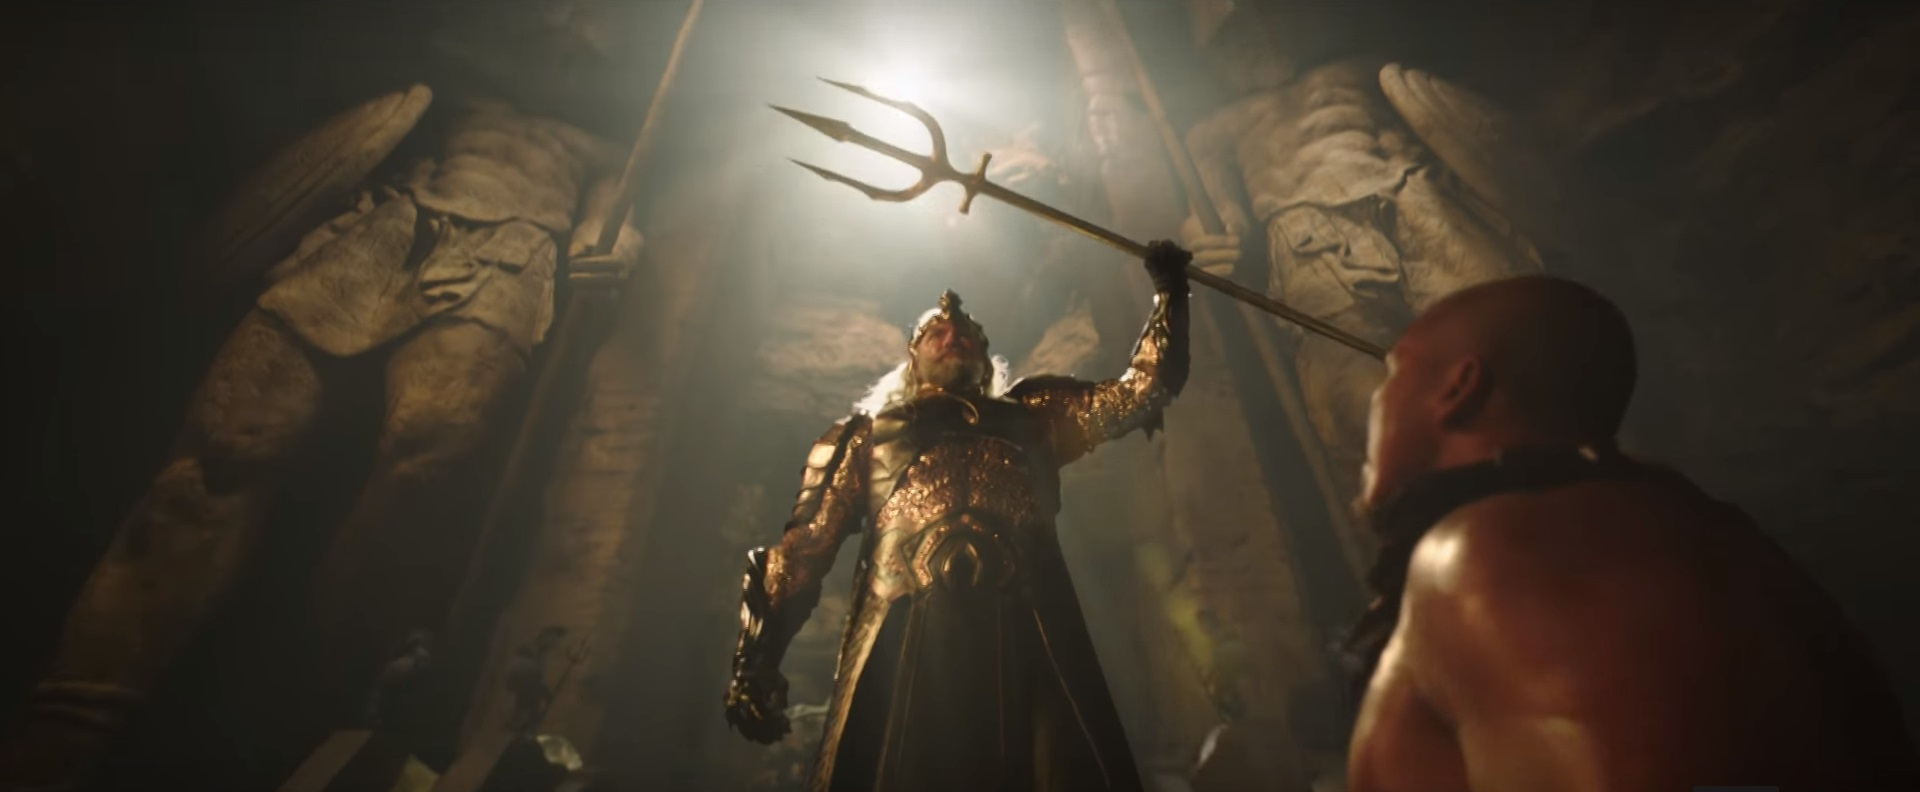 Aquaman Check Out 55 Hi Res Stills From The Breathtaking New 5